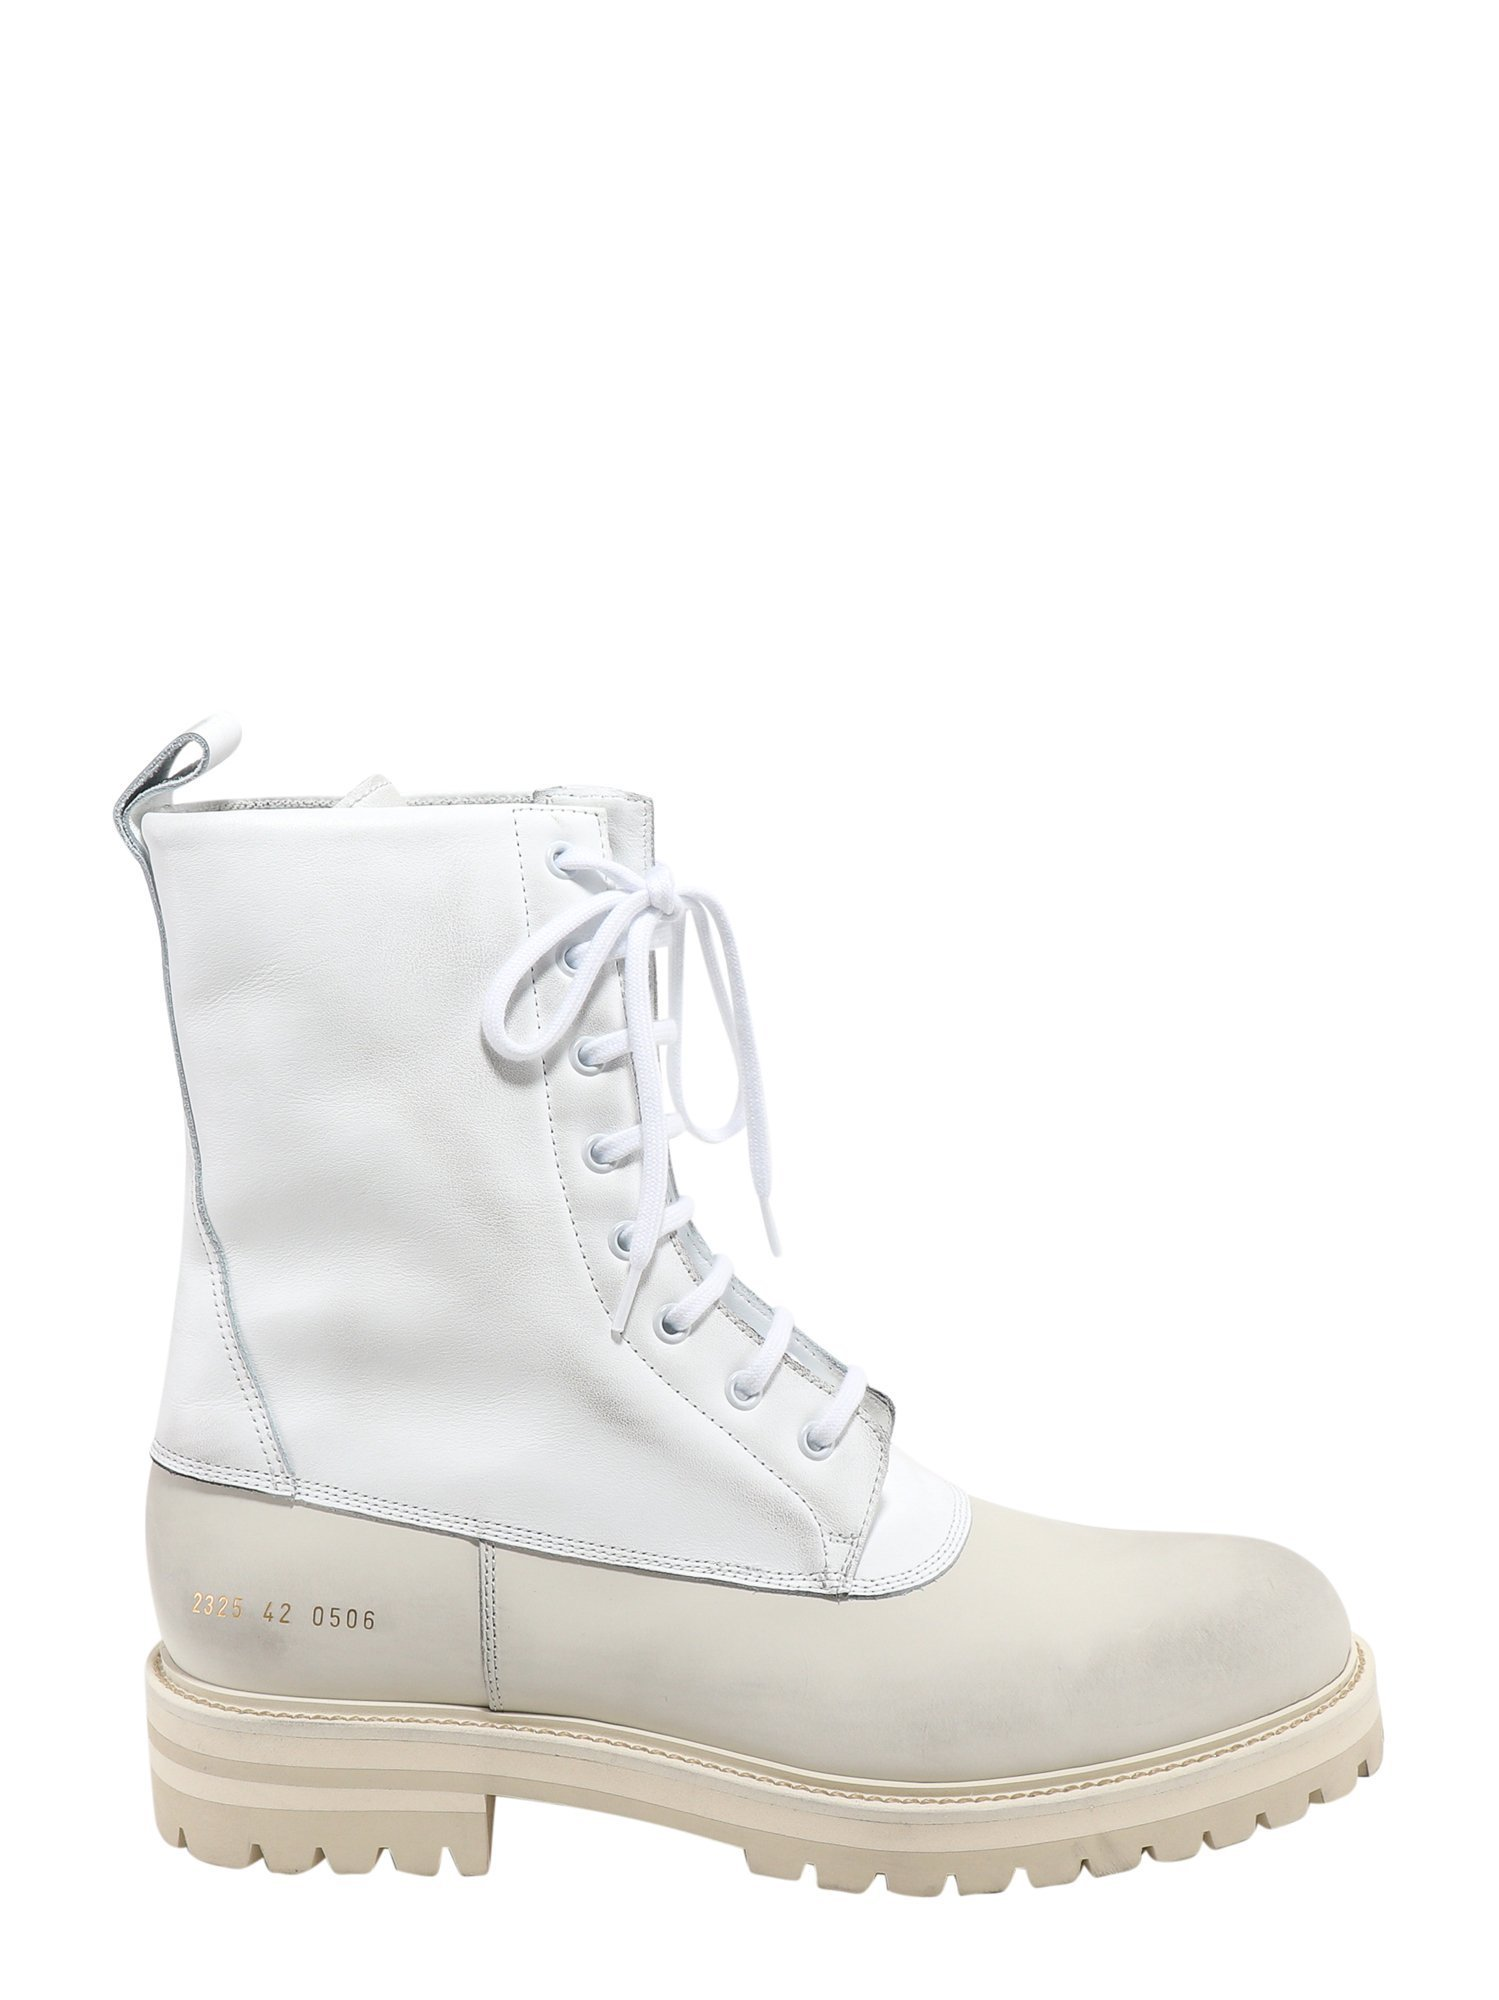 Common Projects  ブーツ シルバー系 (Common Projects /ブーツ) 2325